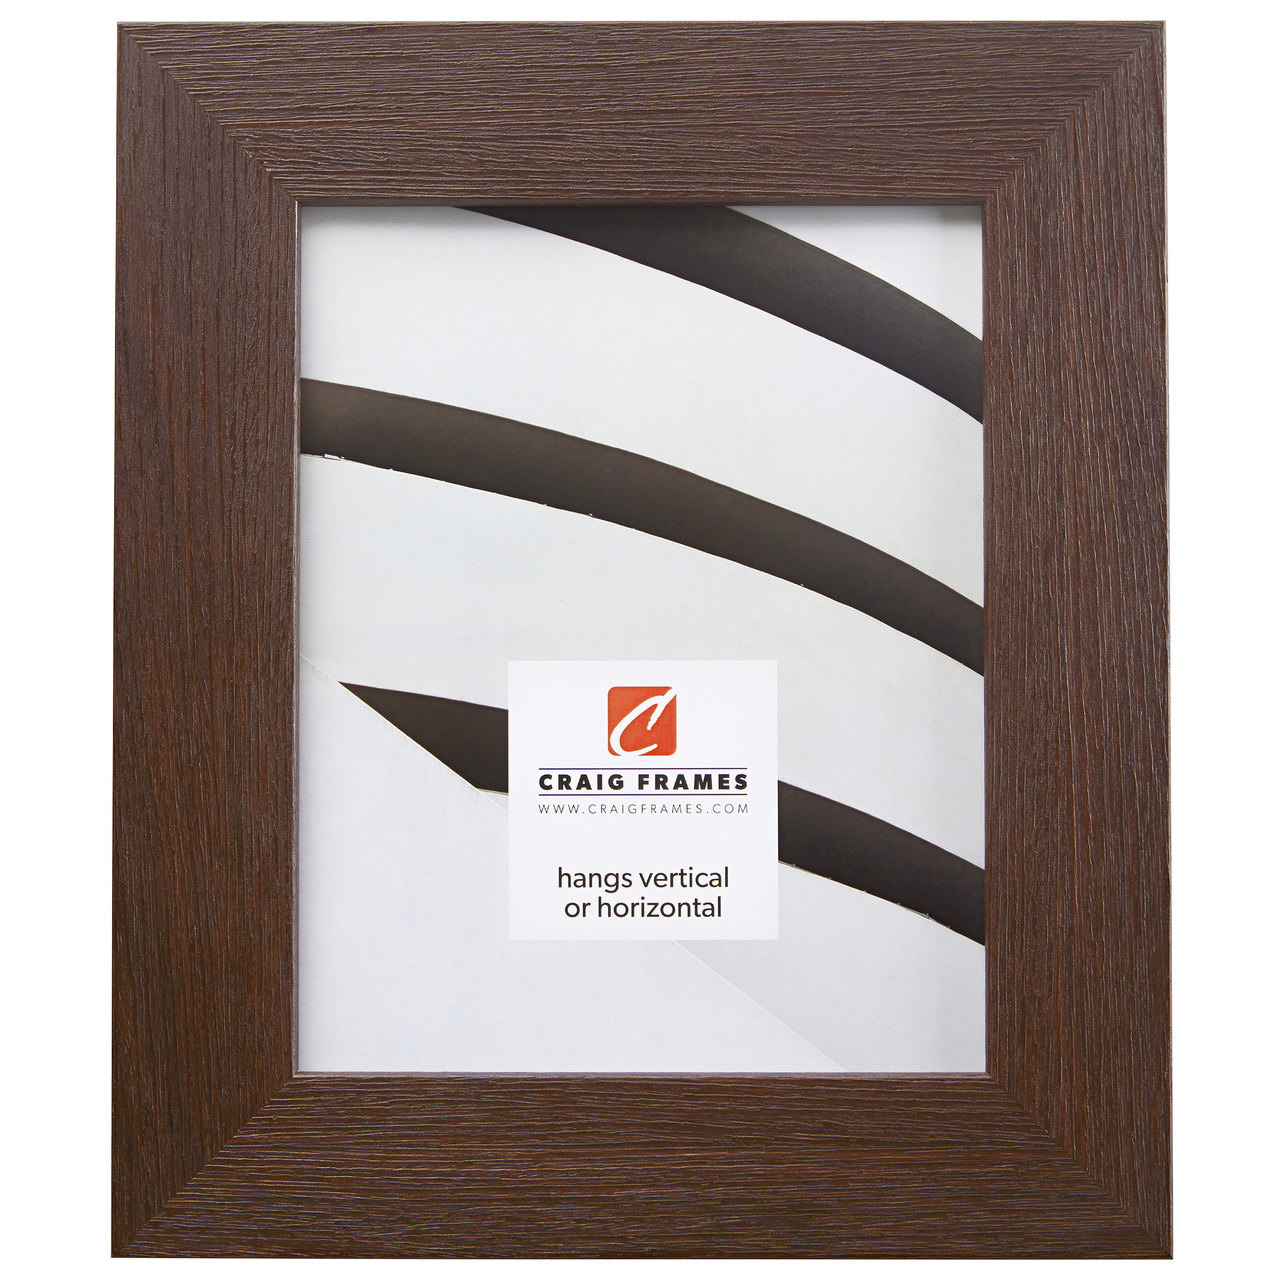 "Bauhaus 200 2"", Textured Brown Oak Picture Frame"